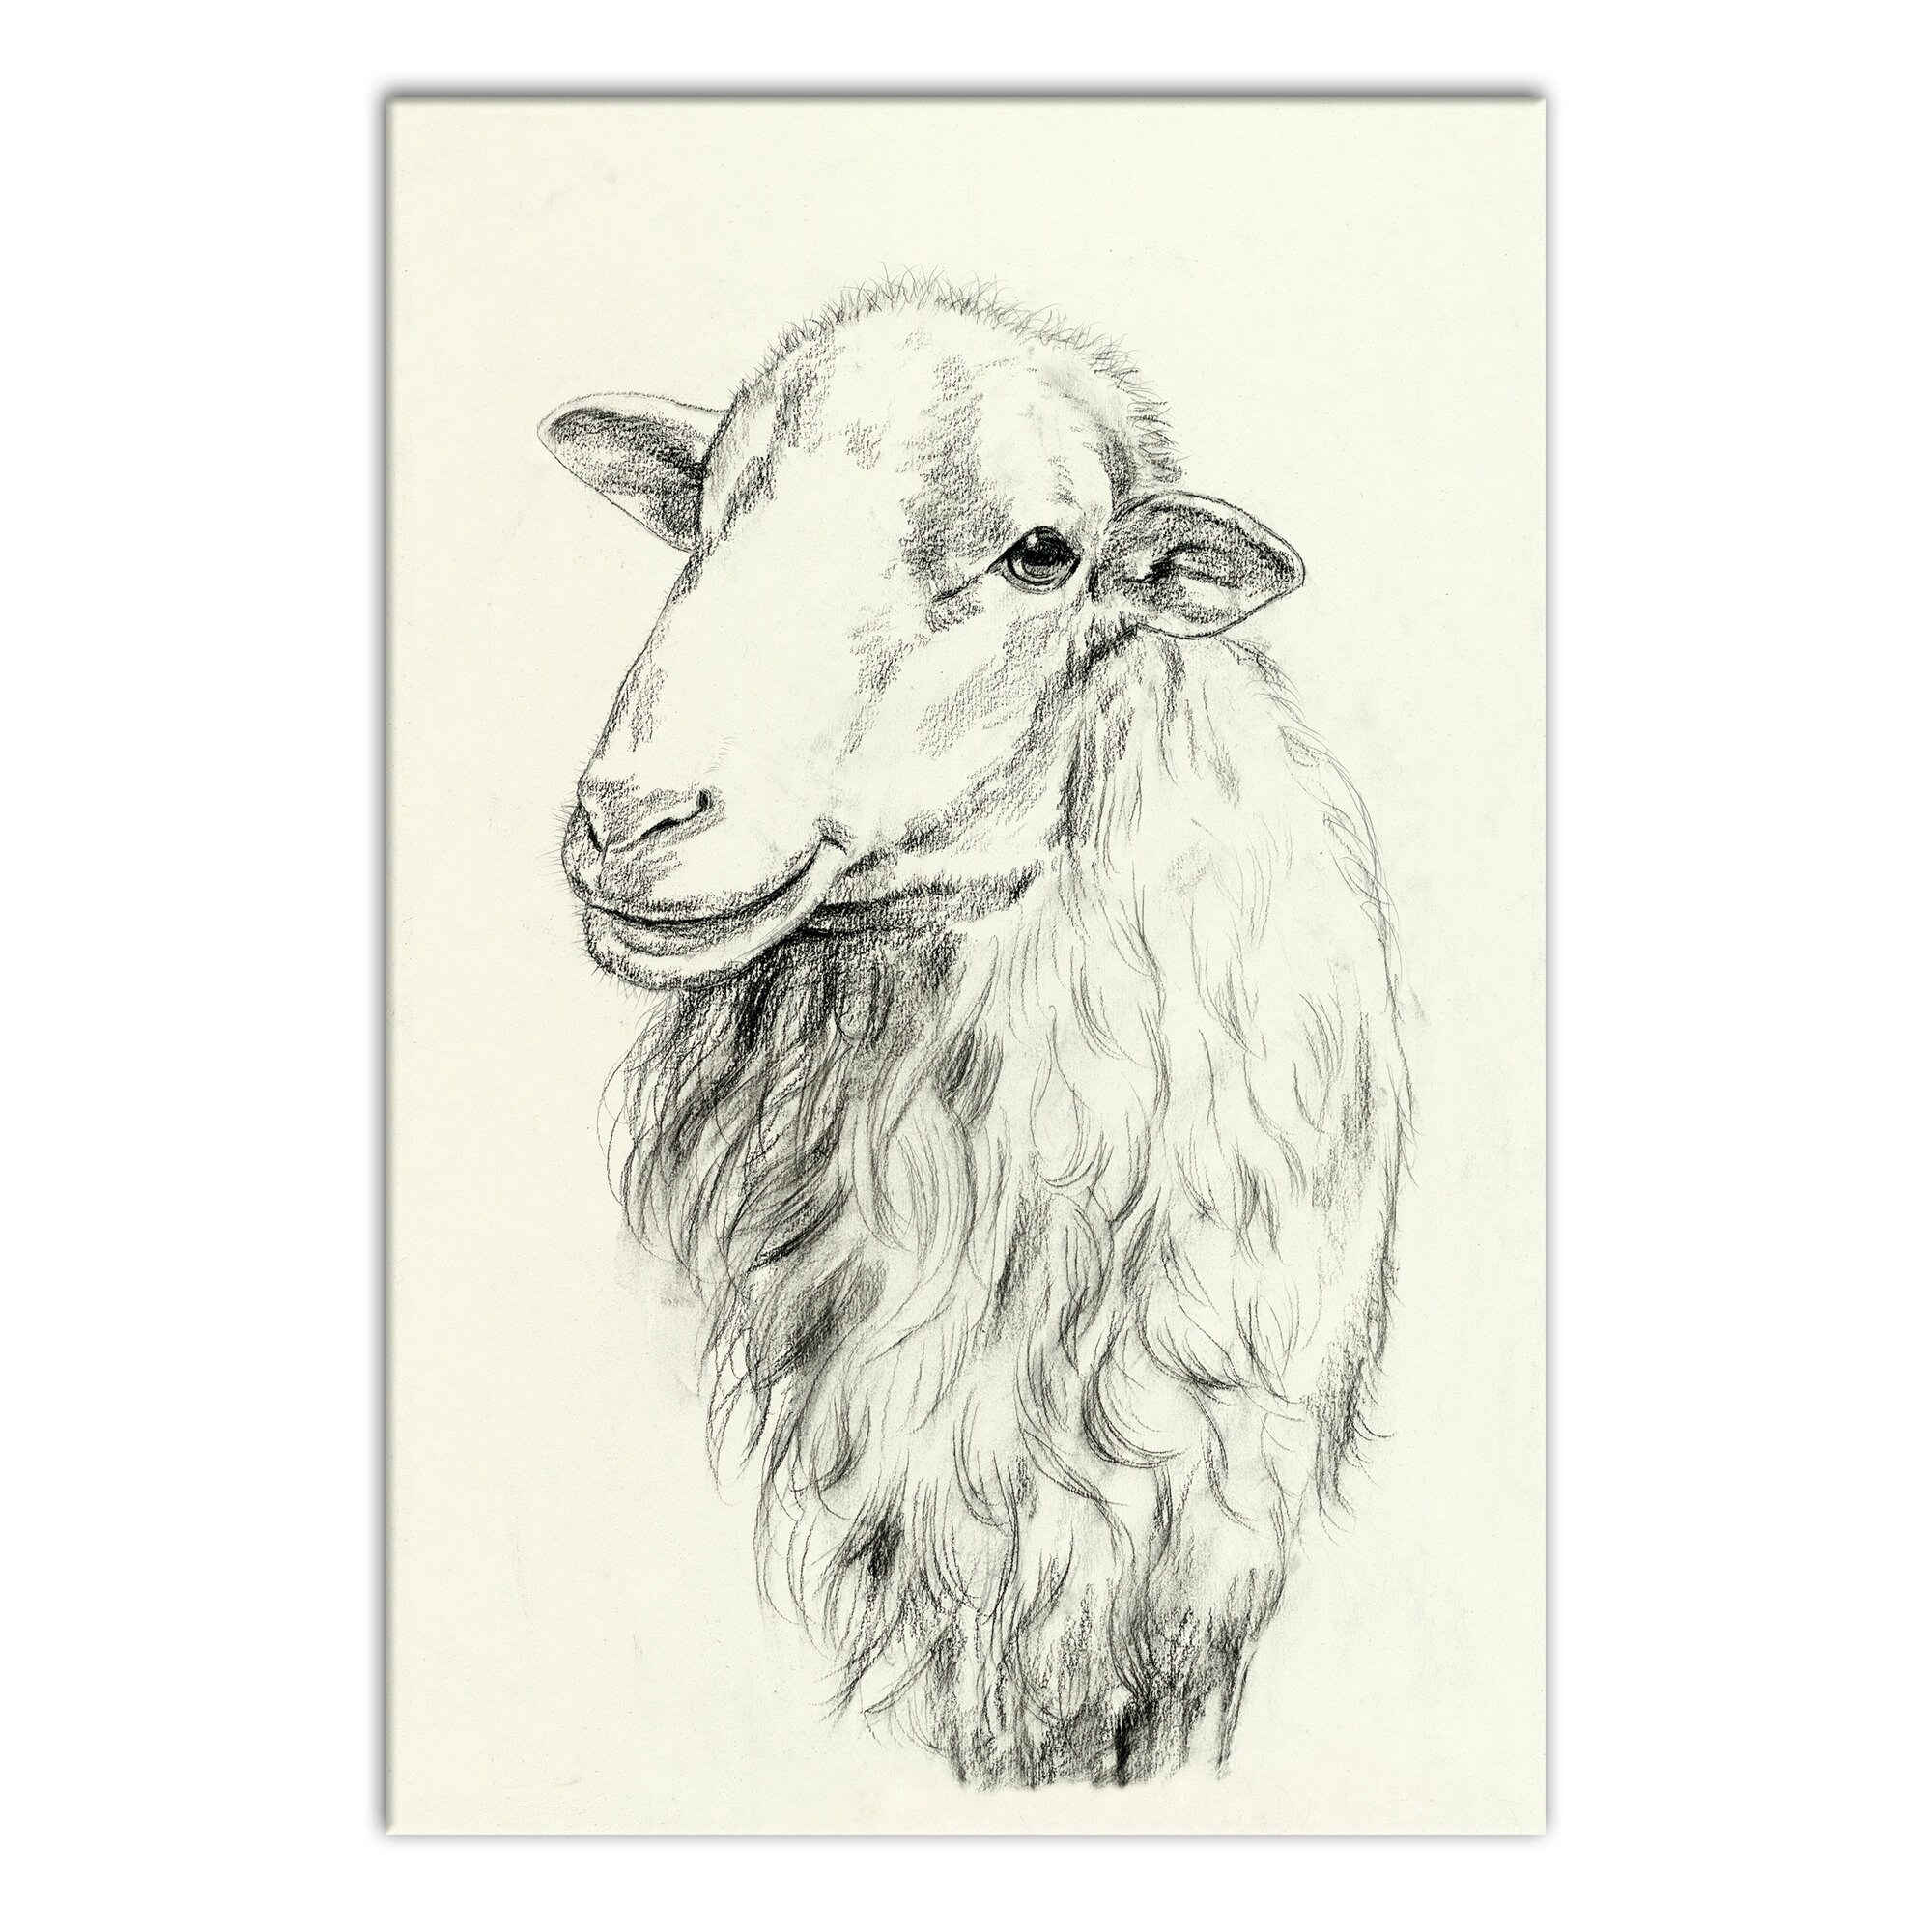 Farmhouse Sheep Sketch Wrapped Canvas Drawing Print On Canvas